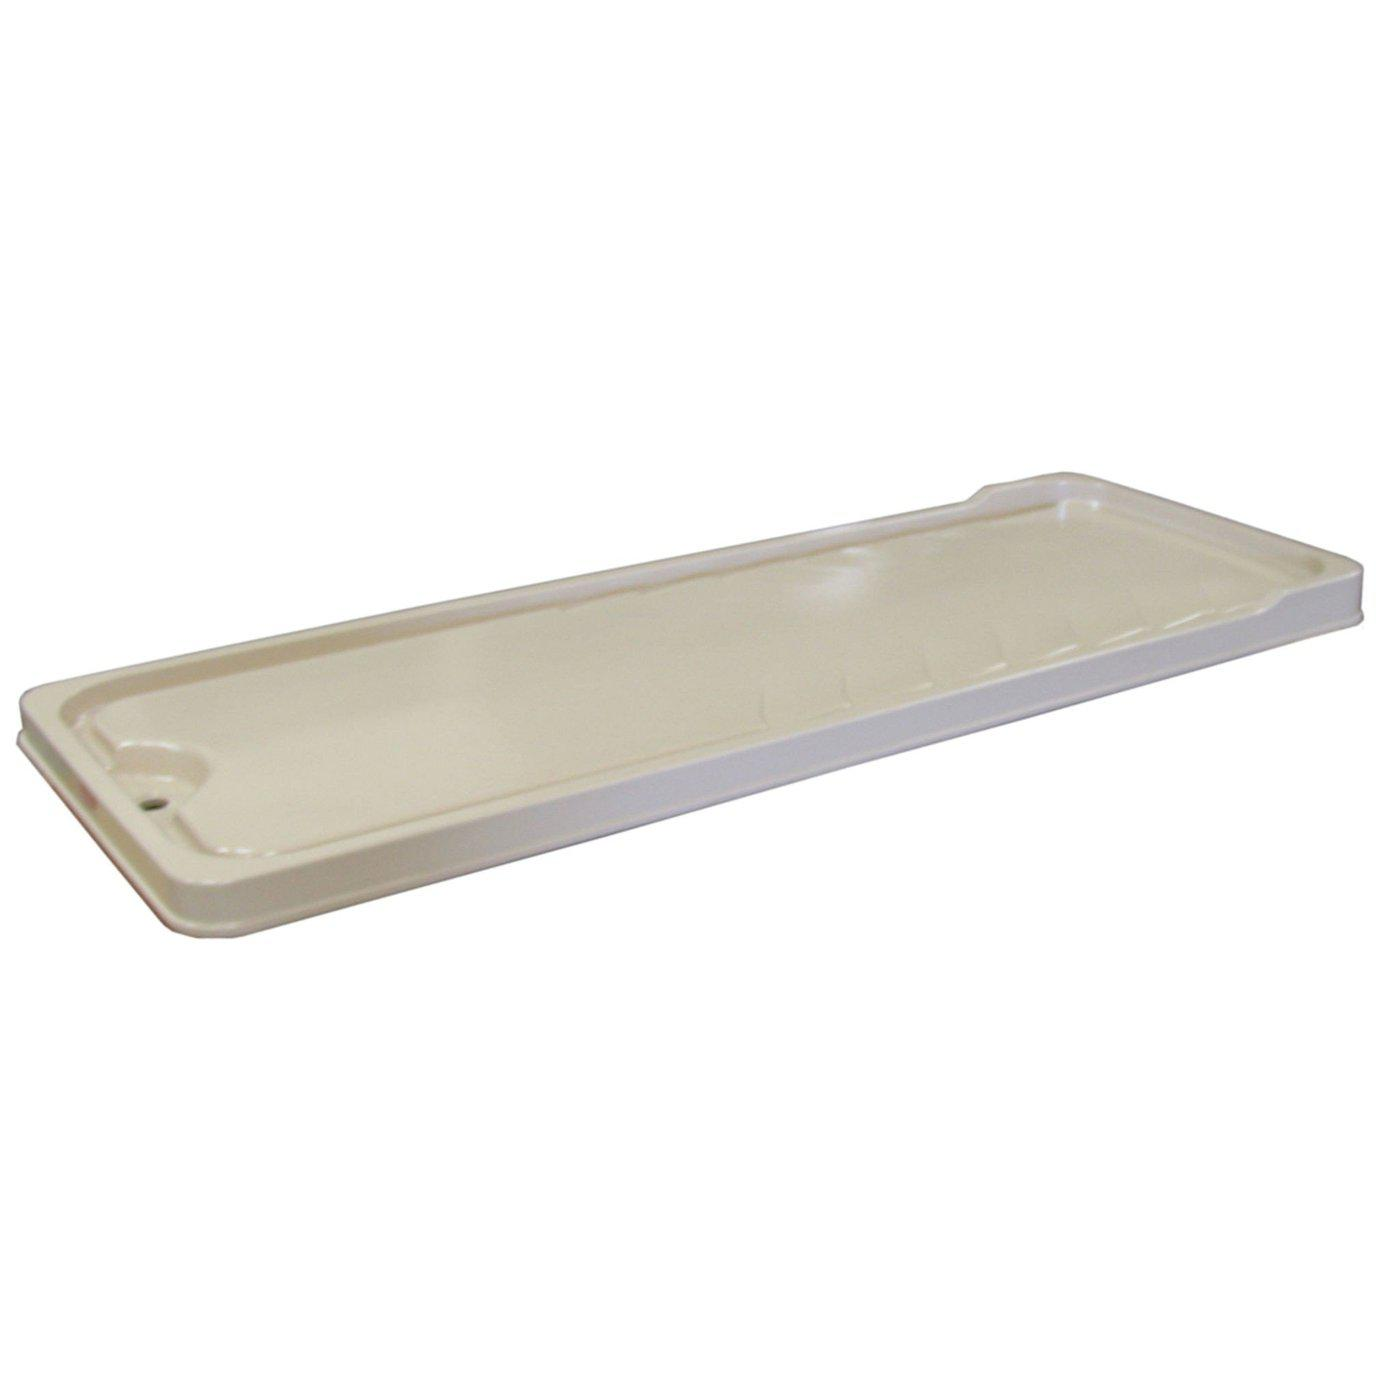 Molded Plastic Carrier Chassis Tray-Cadaver Trays-Mortech Manufacturing Company Inc. Quality Stainless Steel Autopsy, Morgue, Funeral Home, Necropsy, Veterinary / Anatomy, Dissection Equipment and Accessories